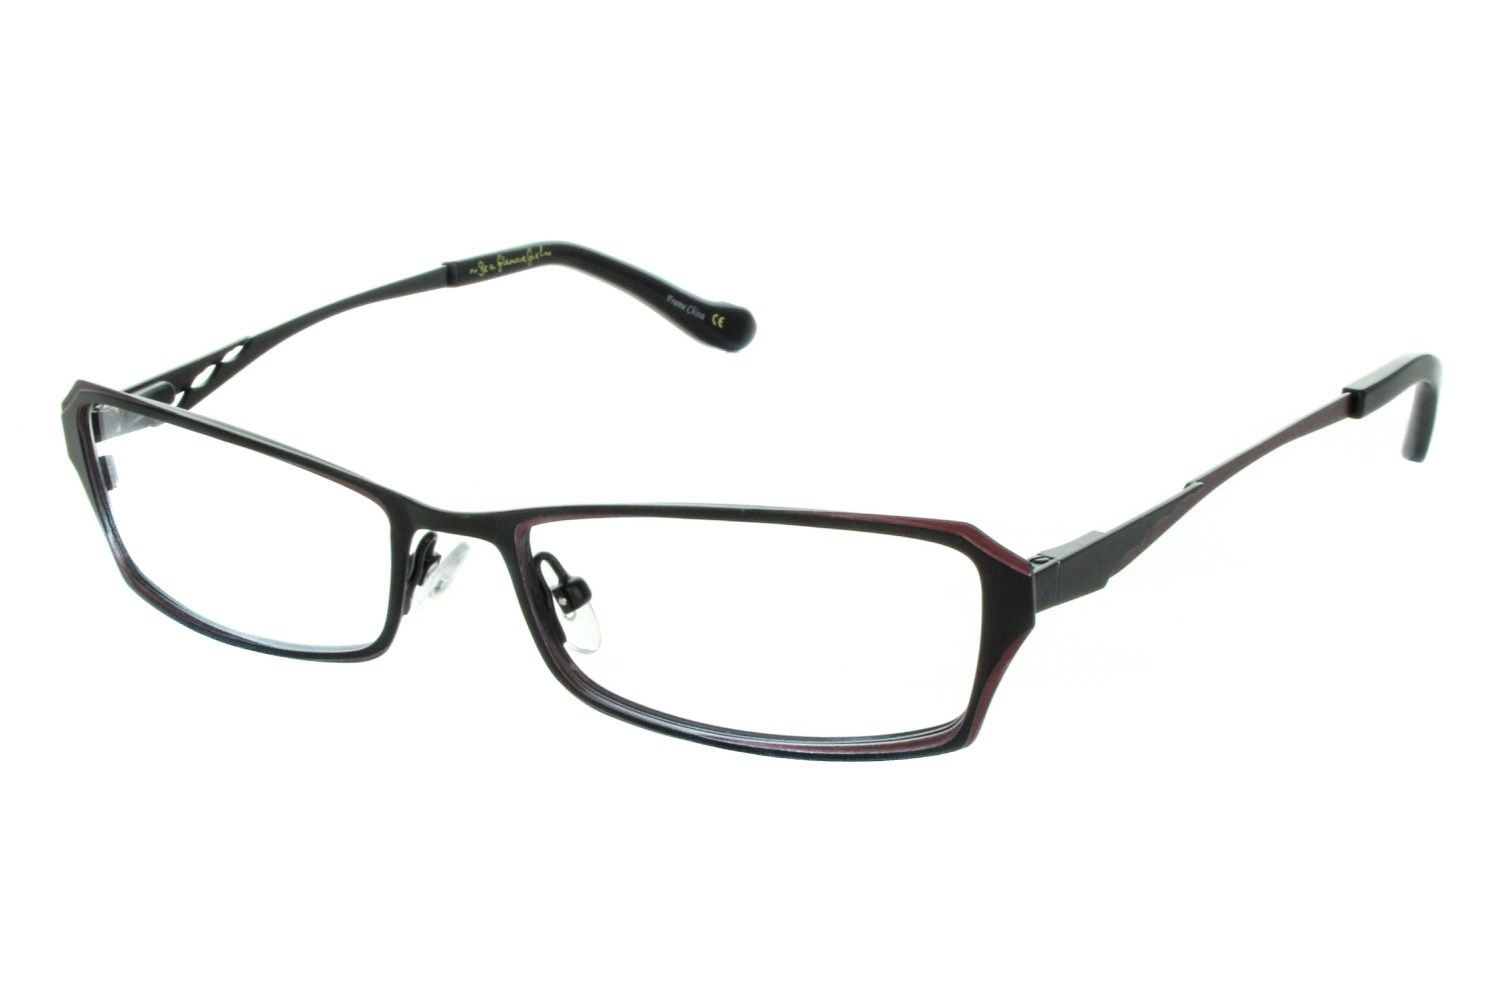 lulu-guinness-l712-prescription-eyeglasses